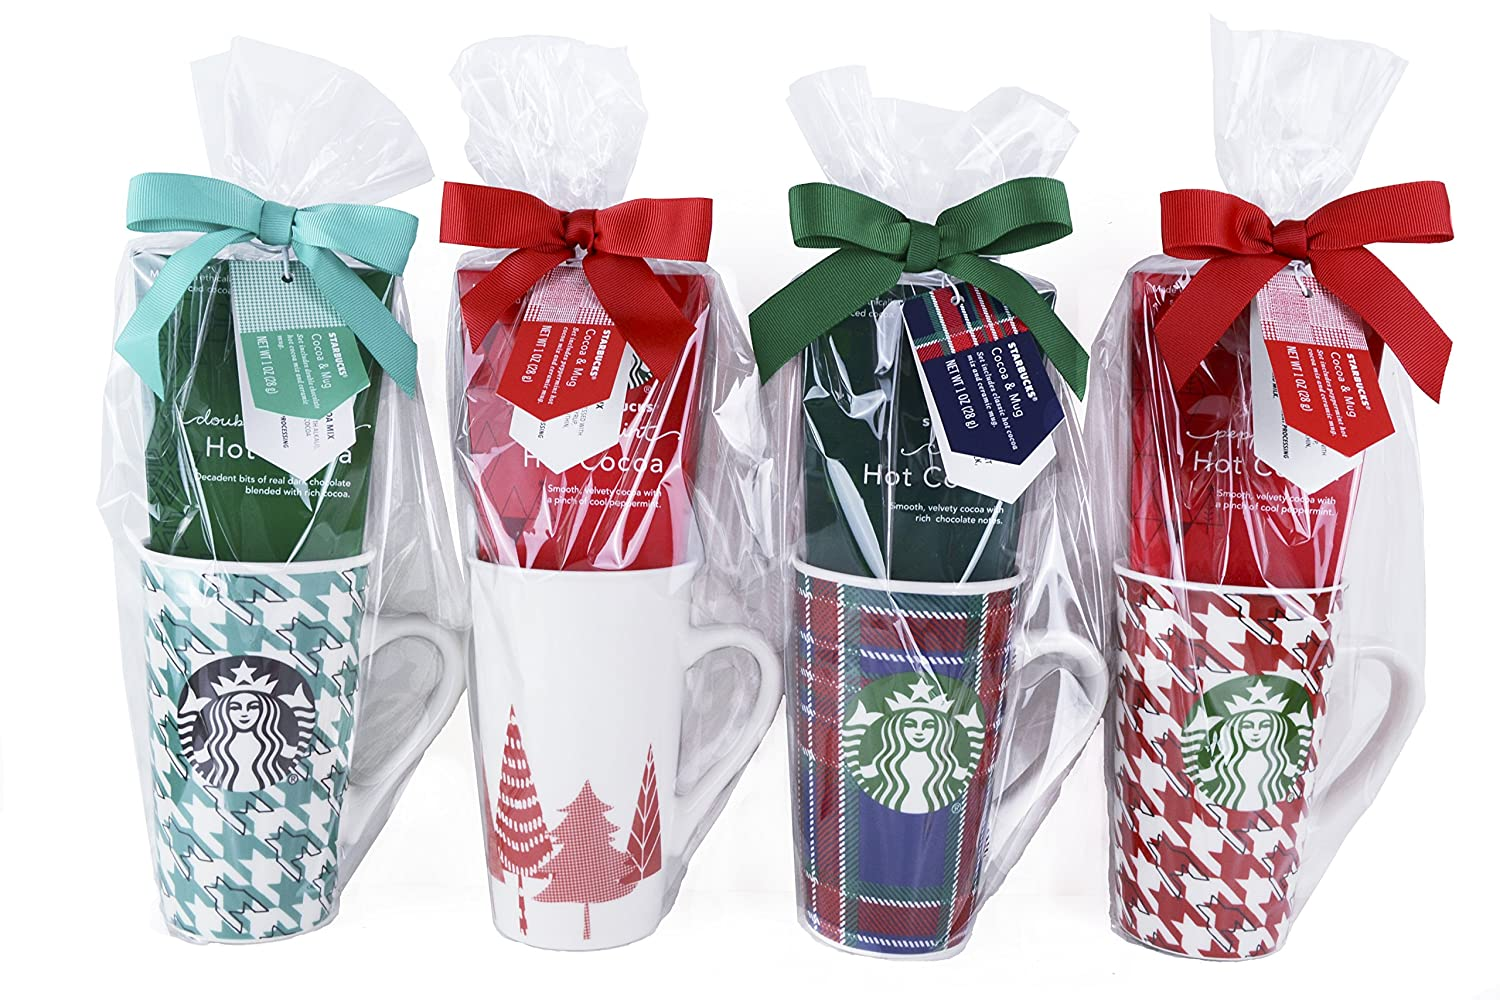 Starbucks Limited Edition Christmas Holiday Mug With Hot Cocoa Gift (Pack of 1)